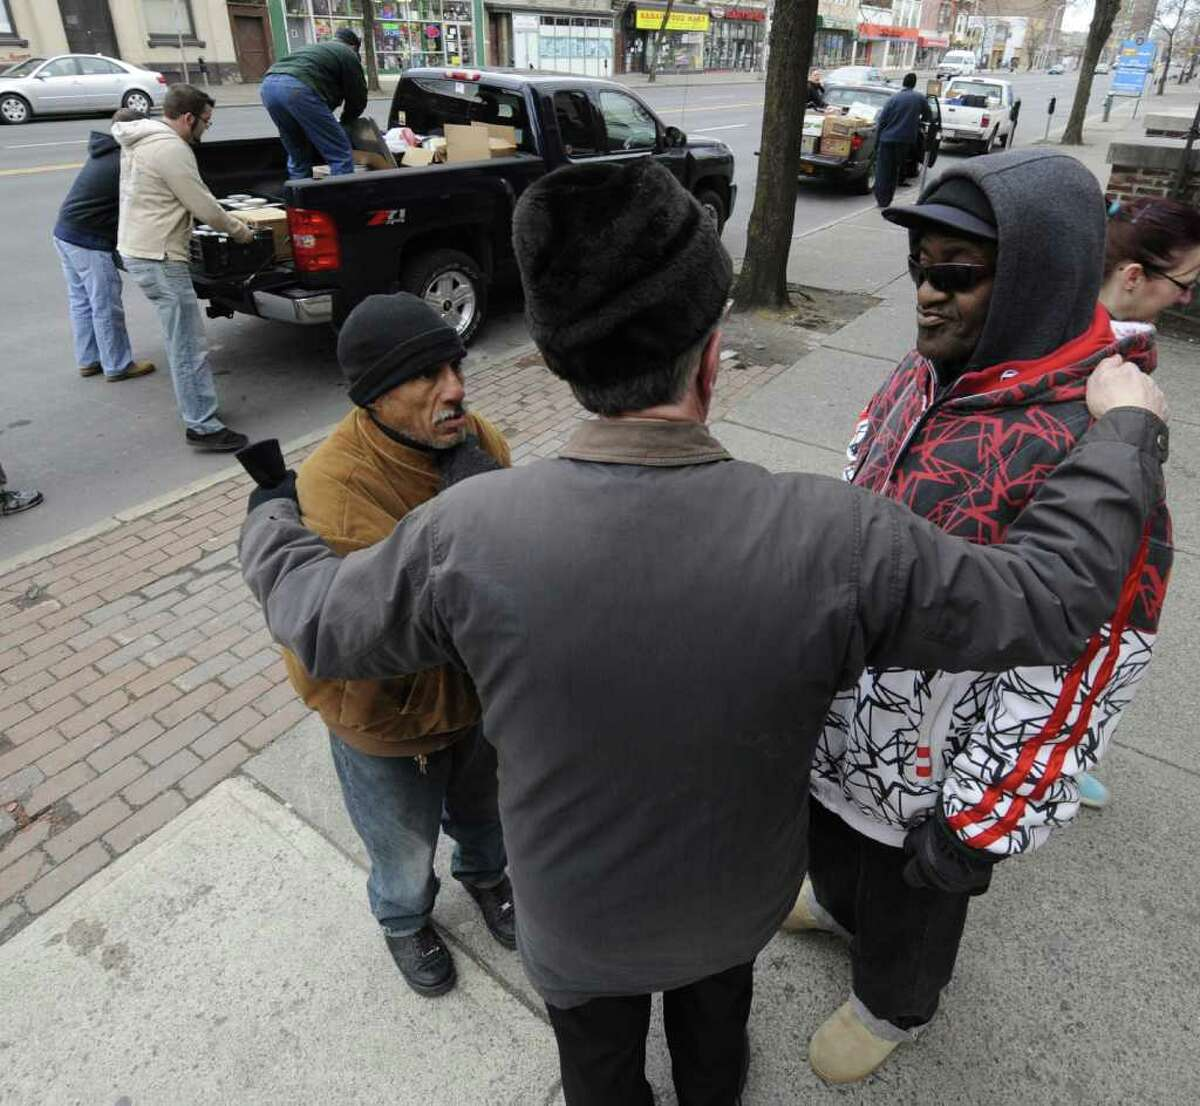 Soup kitchen regulars Antonio Otero, left, and Dumar Wilmer, right, are comforted by Rev. John Bradley at the site of the old Blessed Sacrament Community Kitchen at the corner of Central and Lake Avenue in Albany, N.Y., on Feb. 28, 2012. The new soup kitchen will be at the Sister Maureen Joyce Center. The community kitchen serves as many as 150 at one sitting and is operated by Blessed Sacrament Parish, and staffed by Catholic Charities, Temple Beth Emeth and others. Volunteers from the parish, the community, Catholic Charities and area colleges moved the kitchen with as many as nine trucks and other vehicles. ( Skip Dickstein / Times Union)